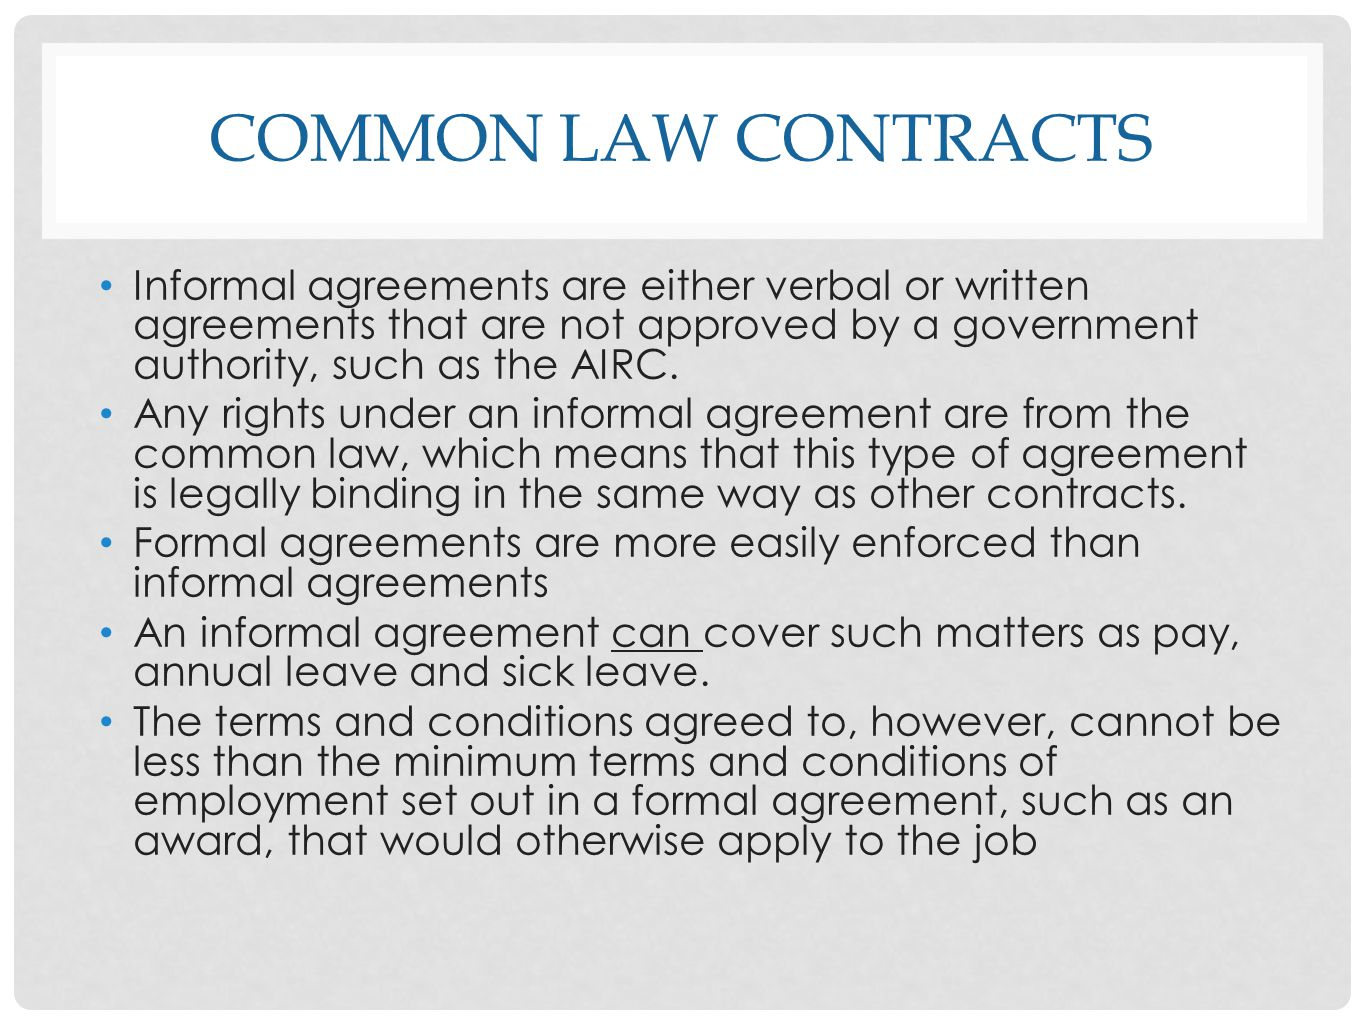 common law contracts Informal agreements are either verbal or written agreements that are not approved by a government authority, such as the AIRC.